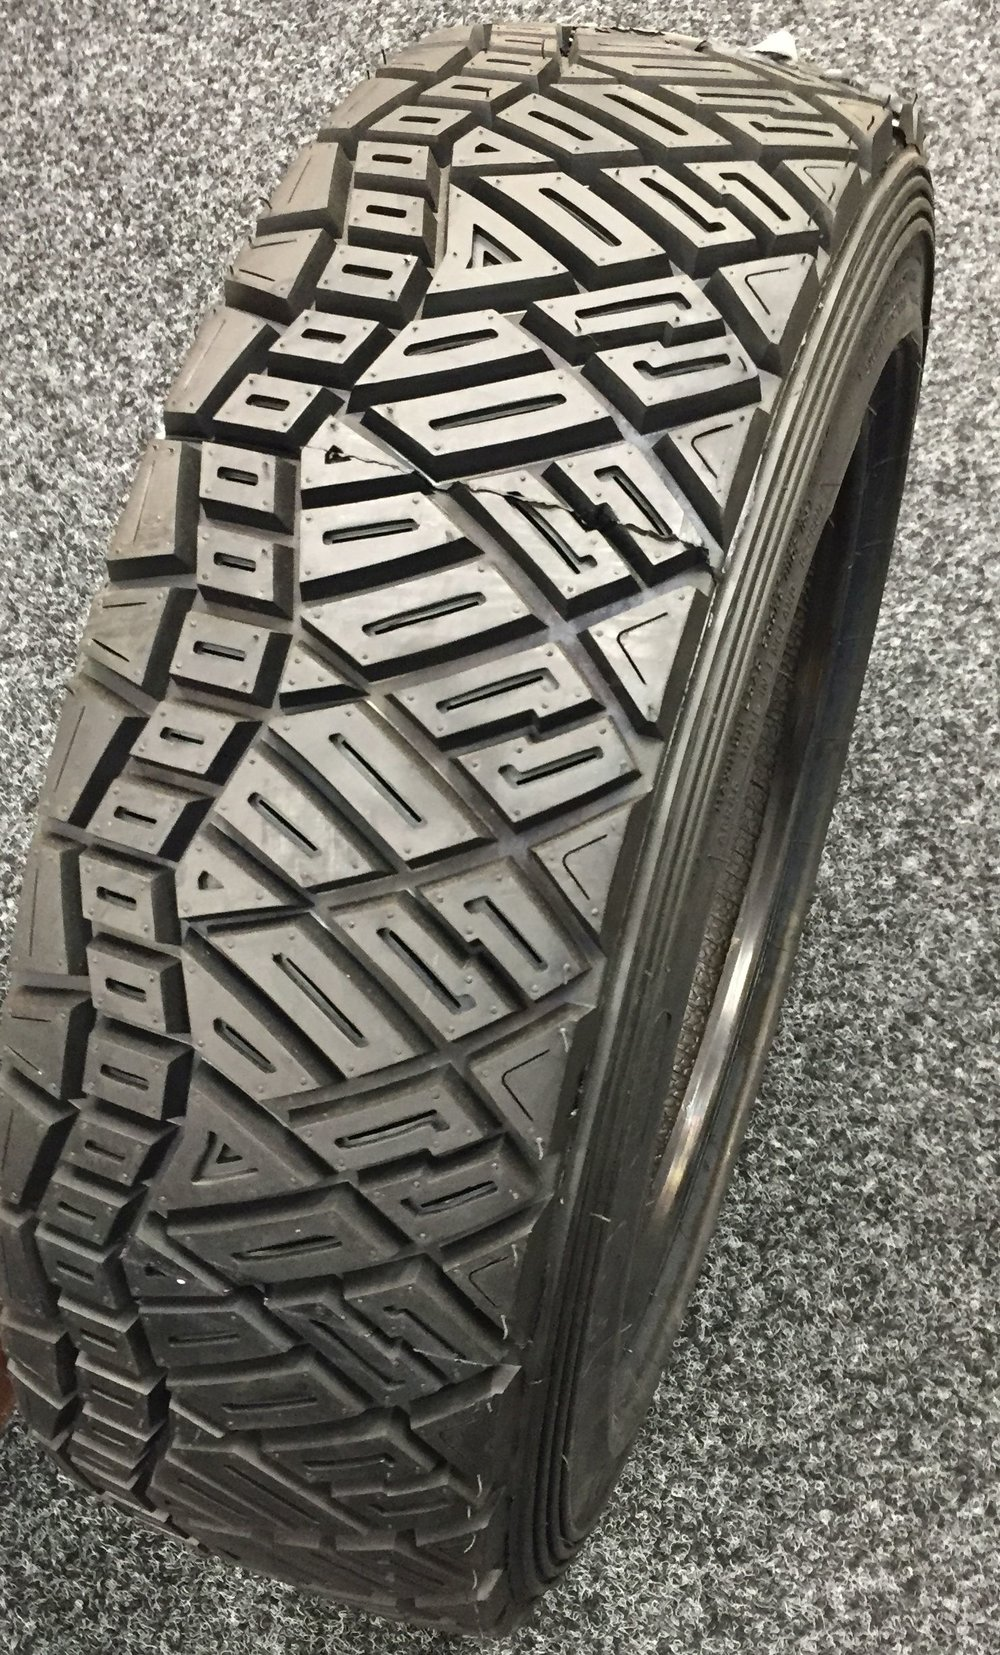 Avon M&S Gravel Rally Tyre - 160/605R15 (185/60R15) - E-Marked Rally Tyre